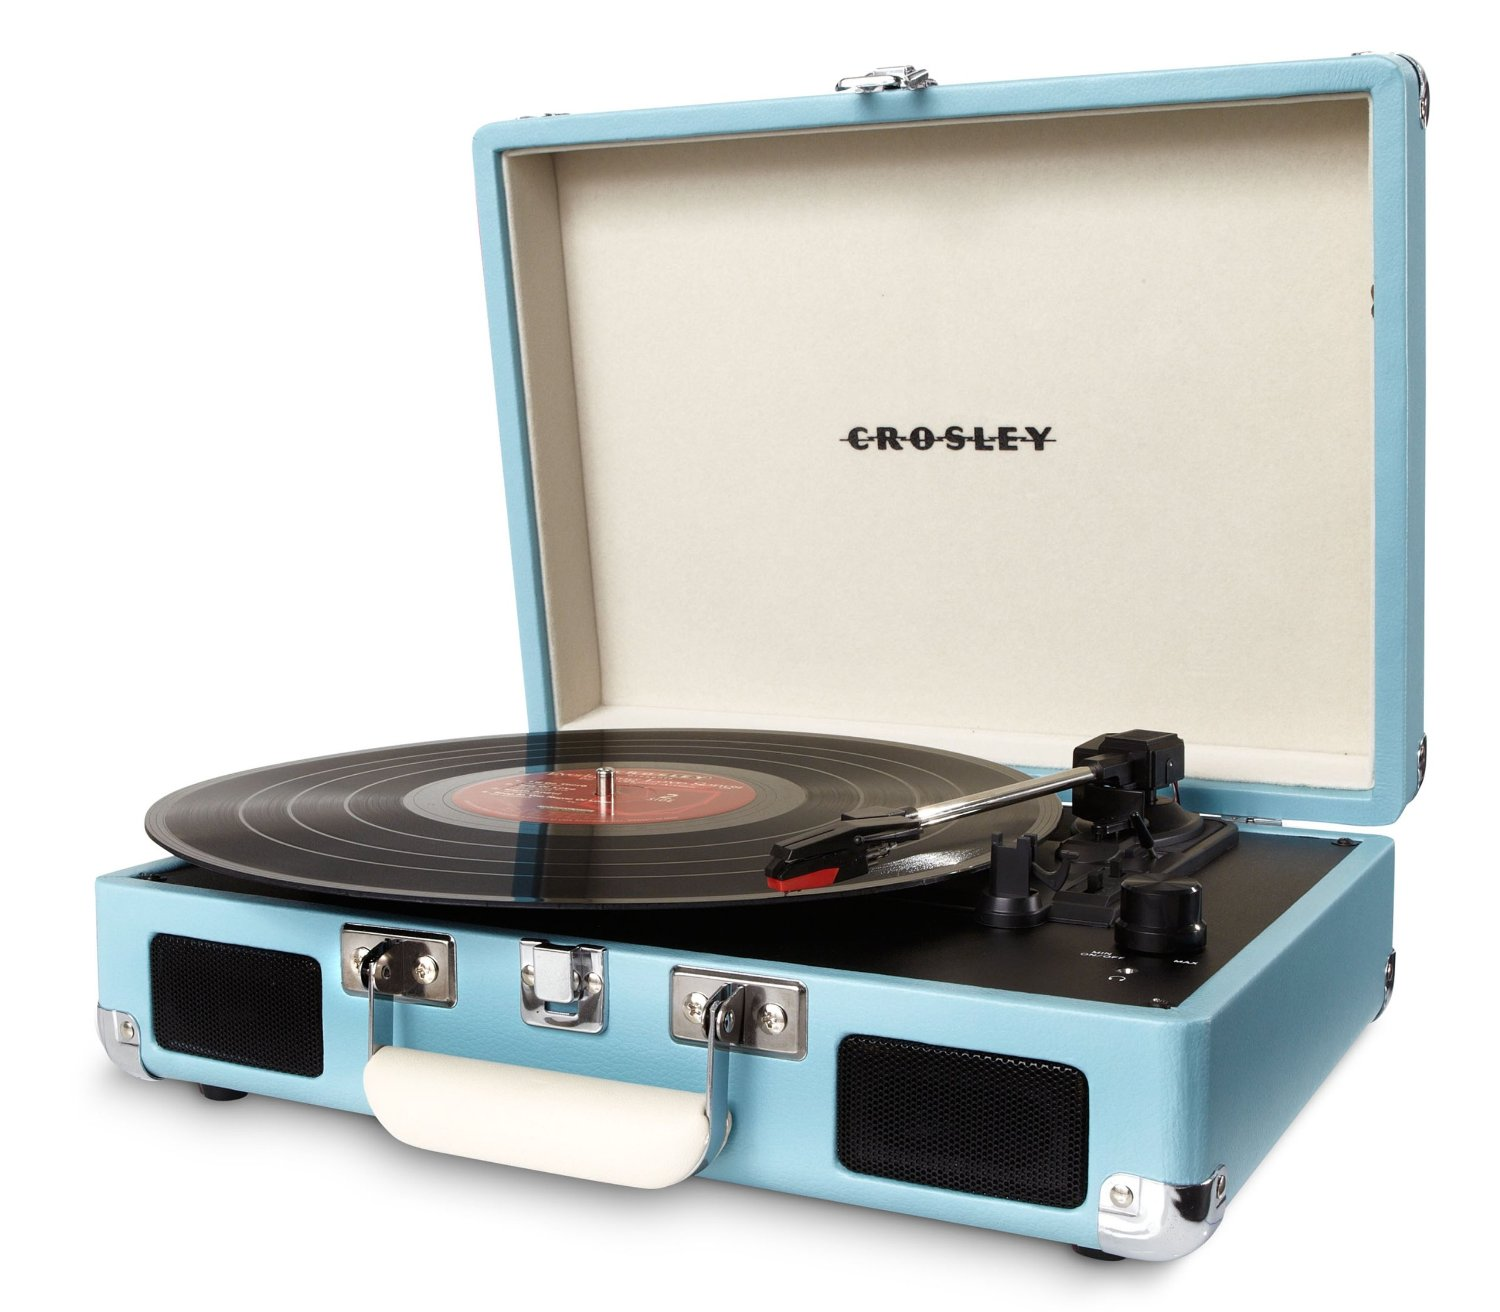 Crosley Cruiser Portable Turntable Review (CR8005A-TU)